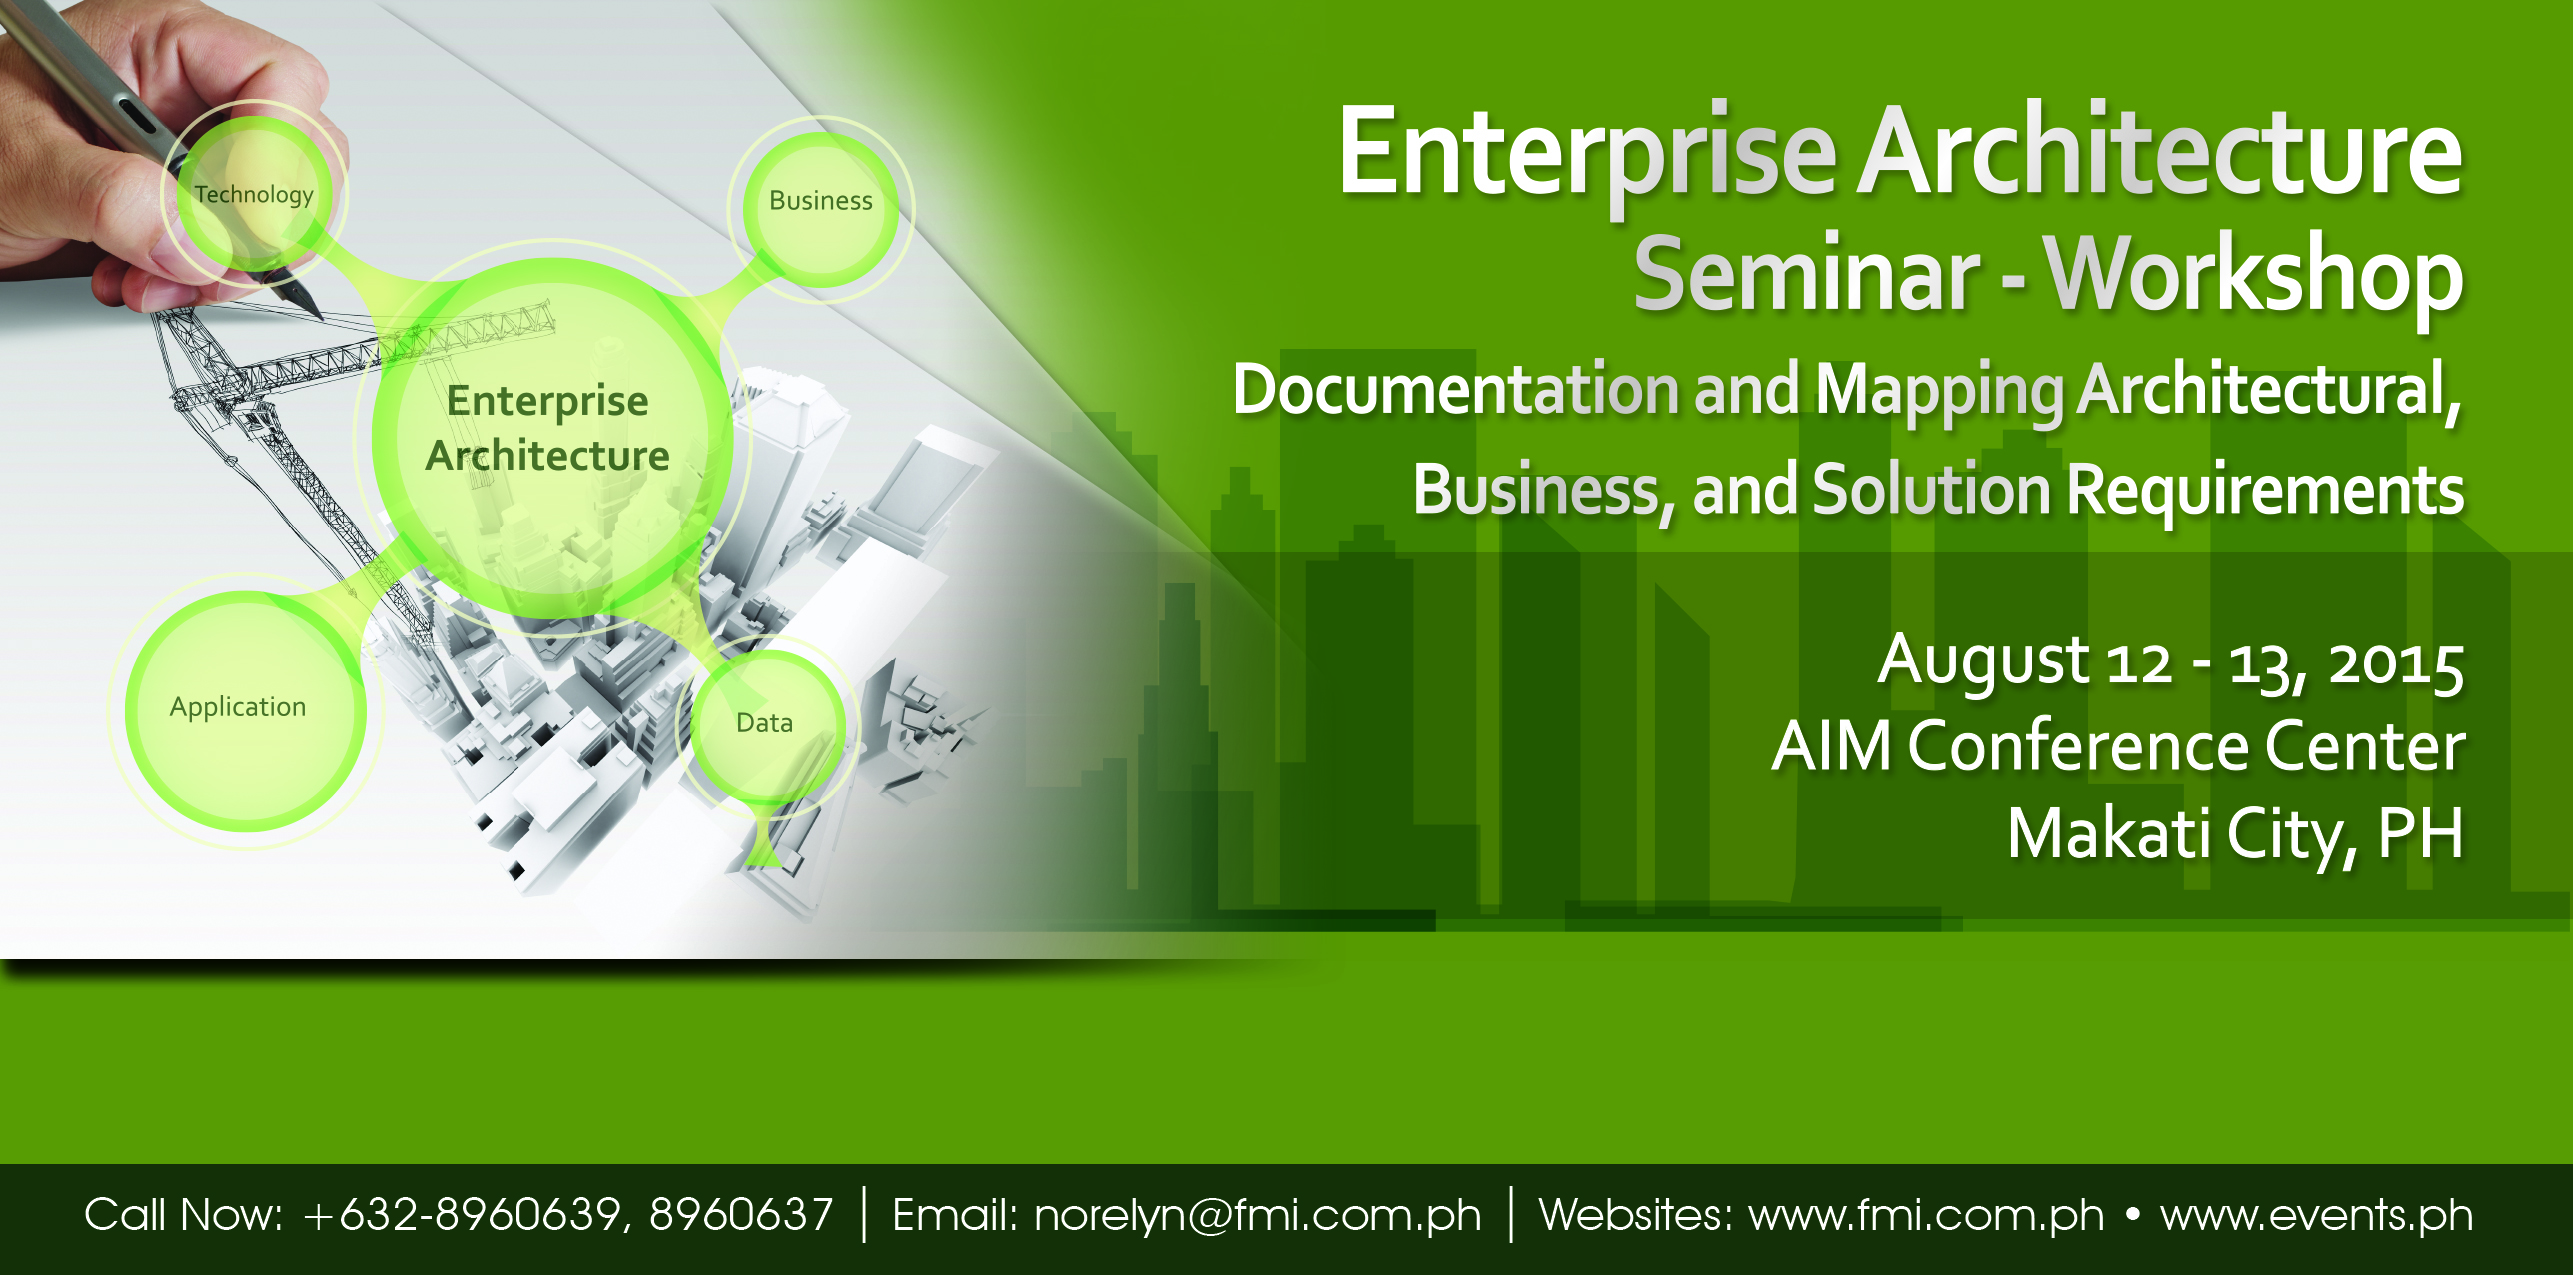 Enterprise Architecture Seminar 2015